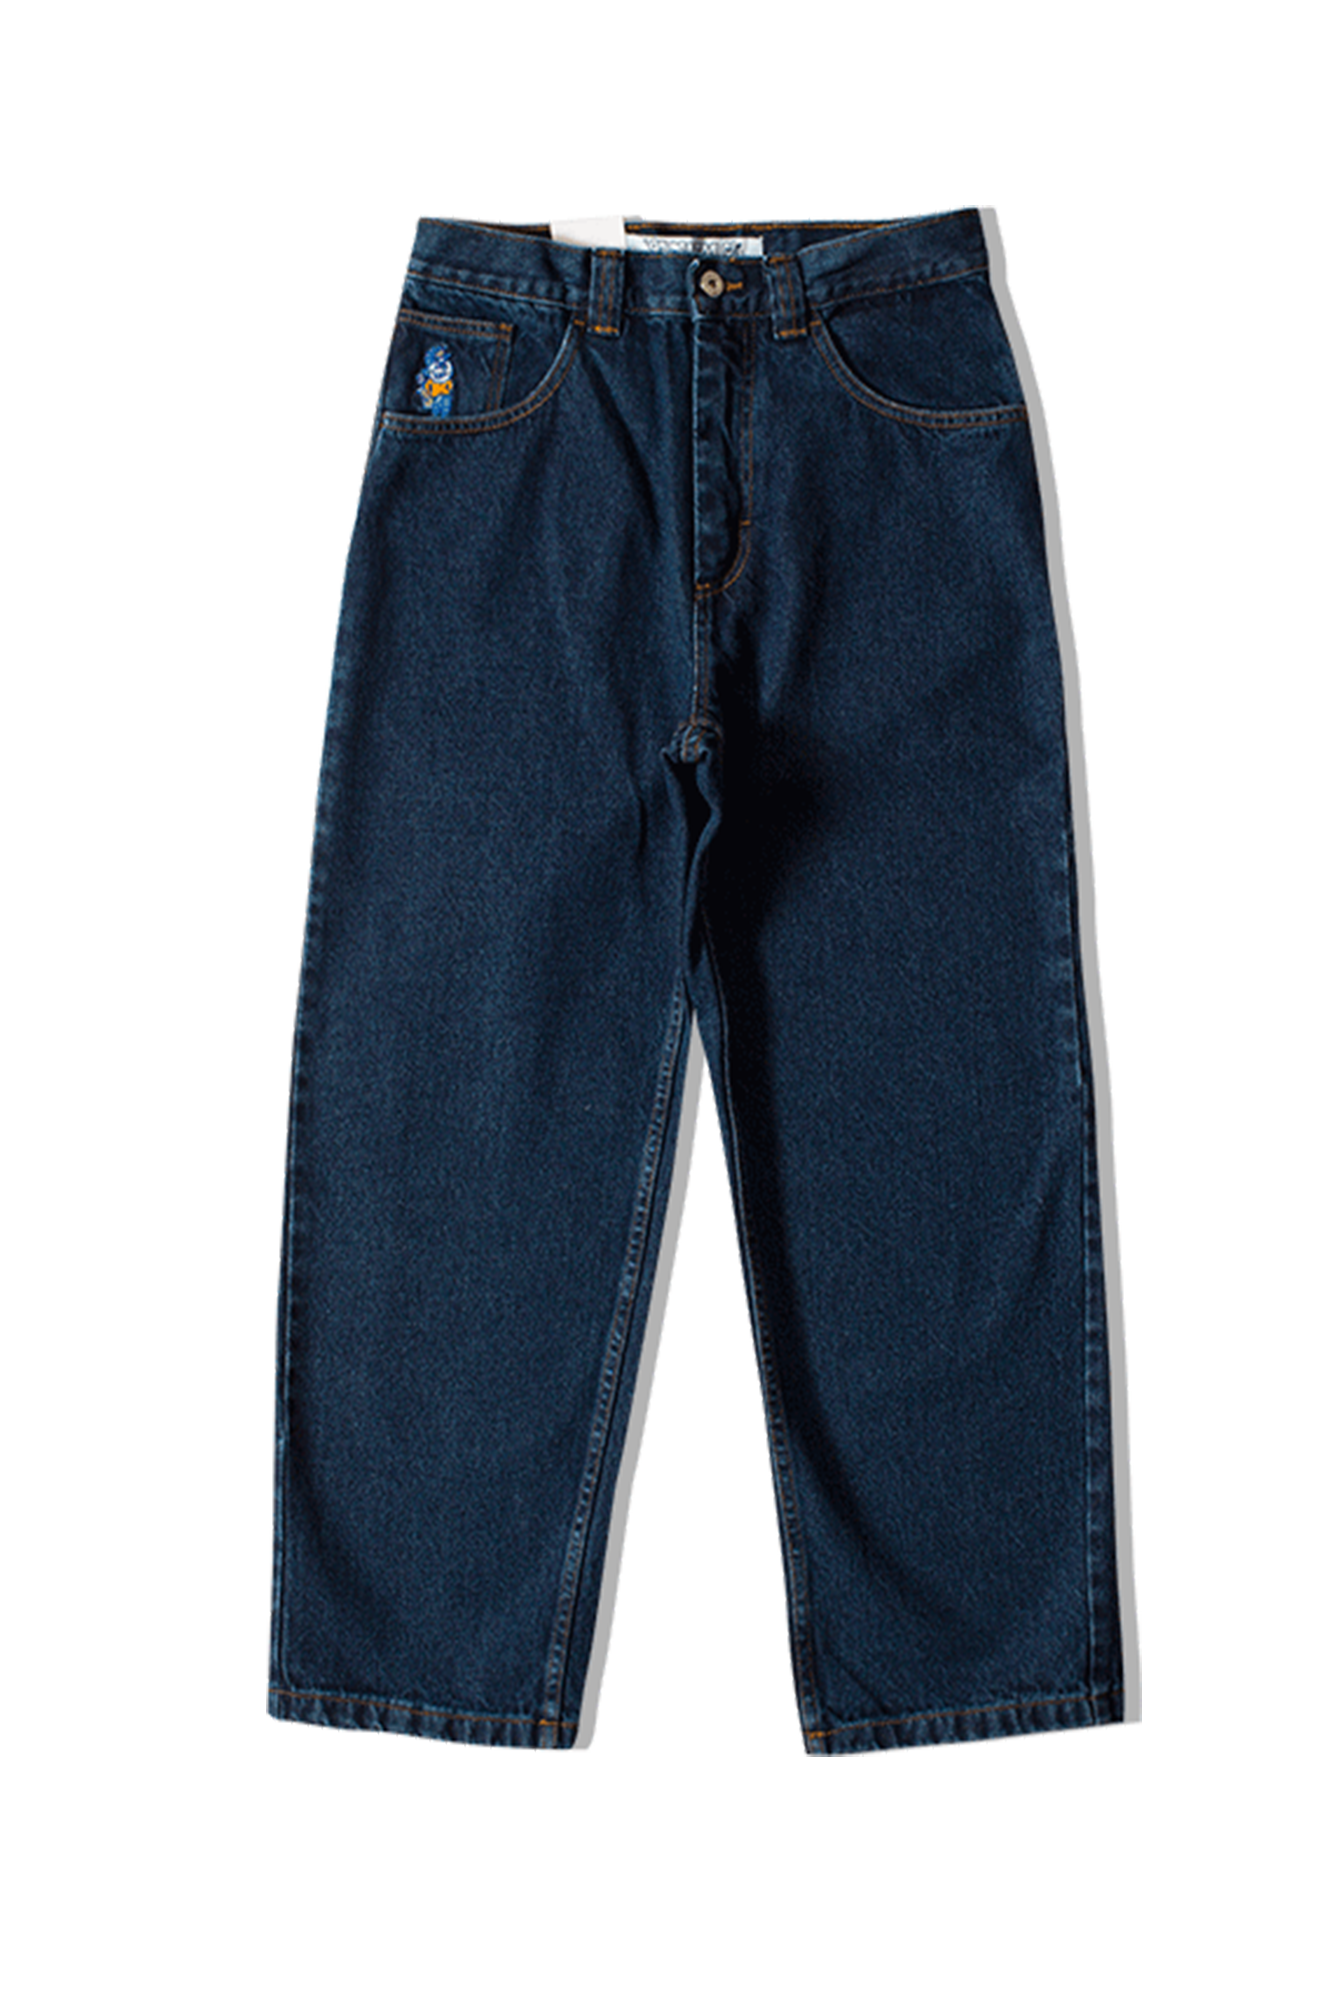 Polar Jeans 93 Denim Blu POL-93DENI#30#DRKBLU#28 - One Block Down